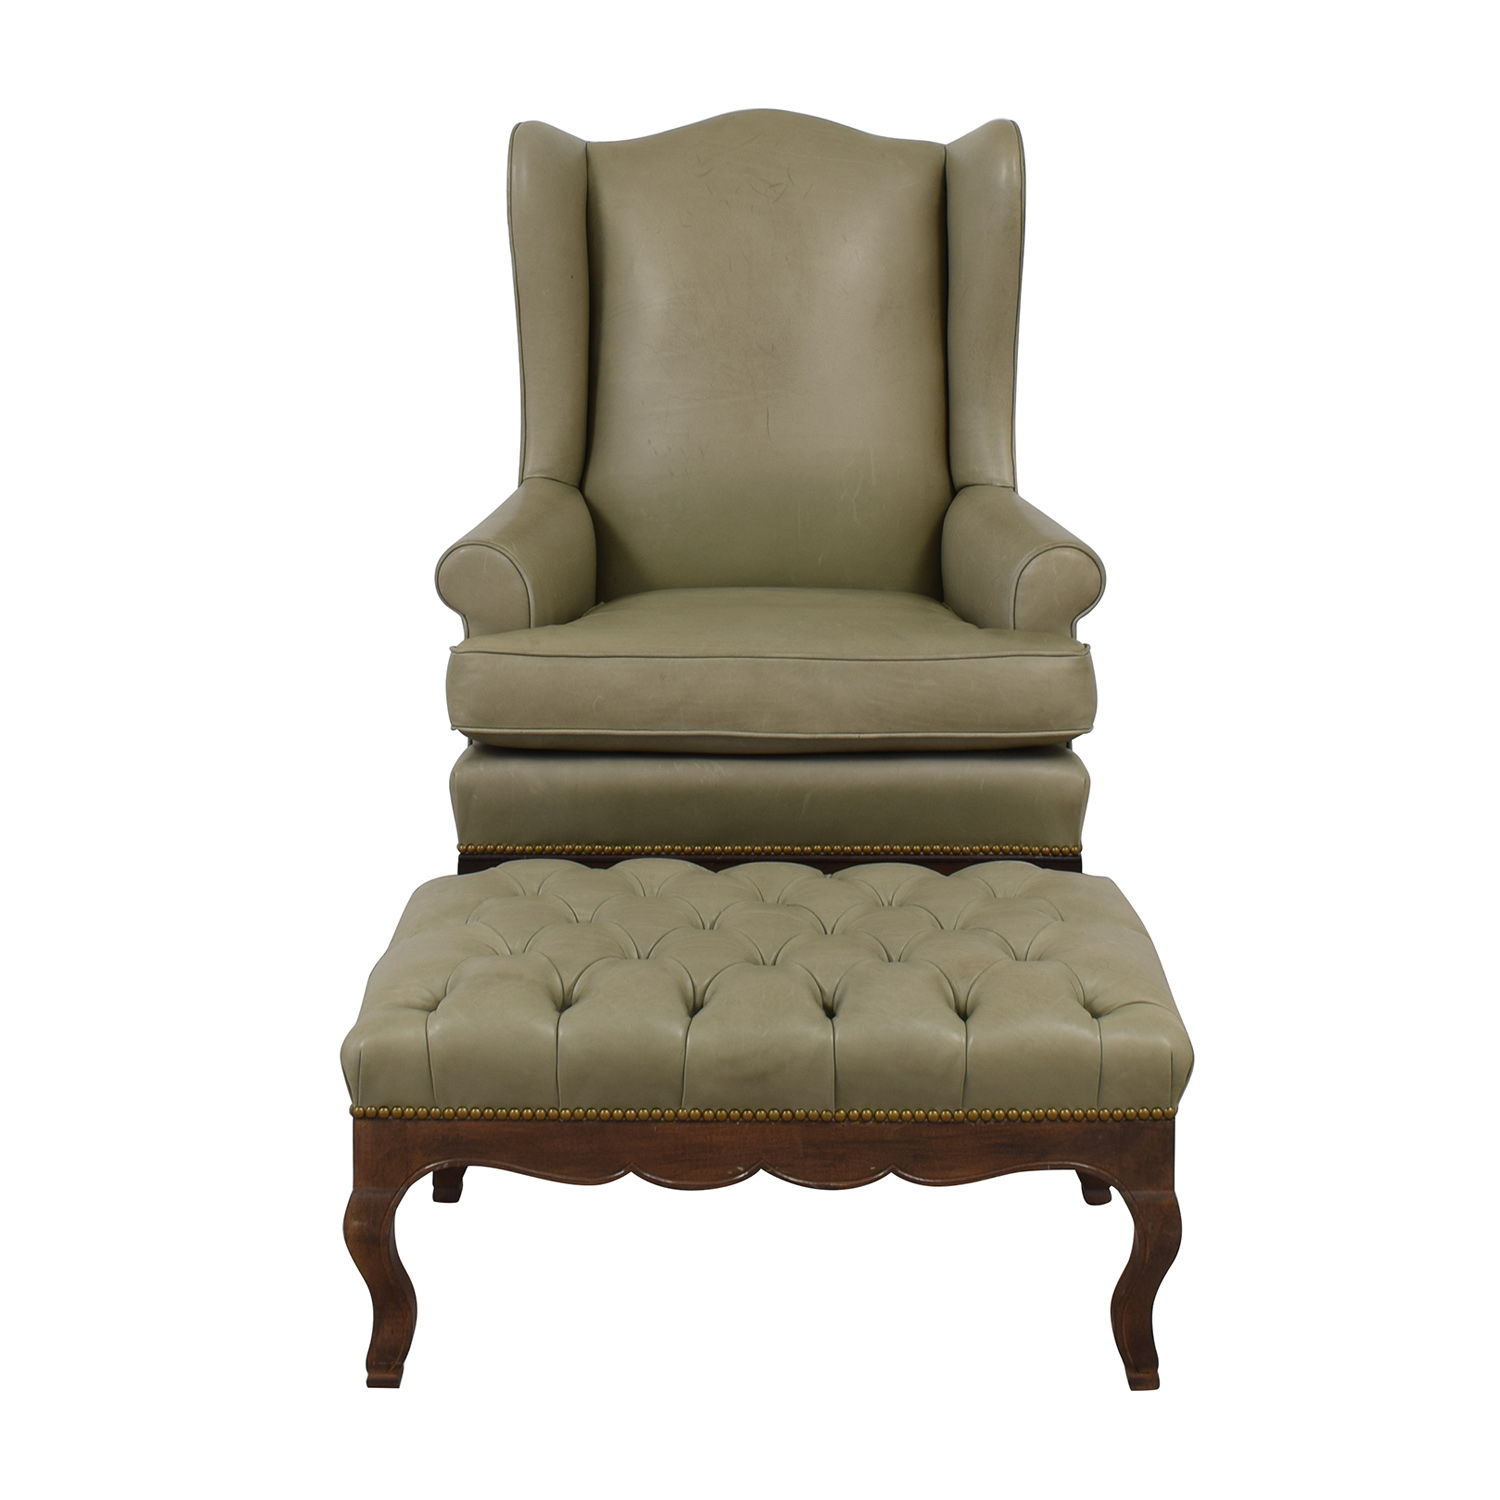 shop Green Leather Wing Back Chair with Tufted Ottoman